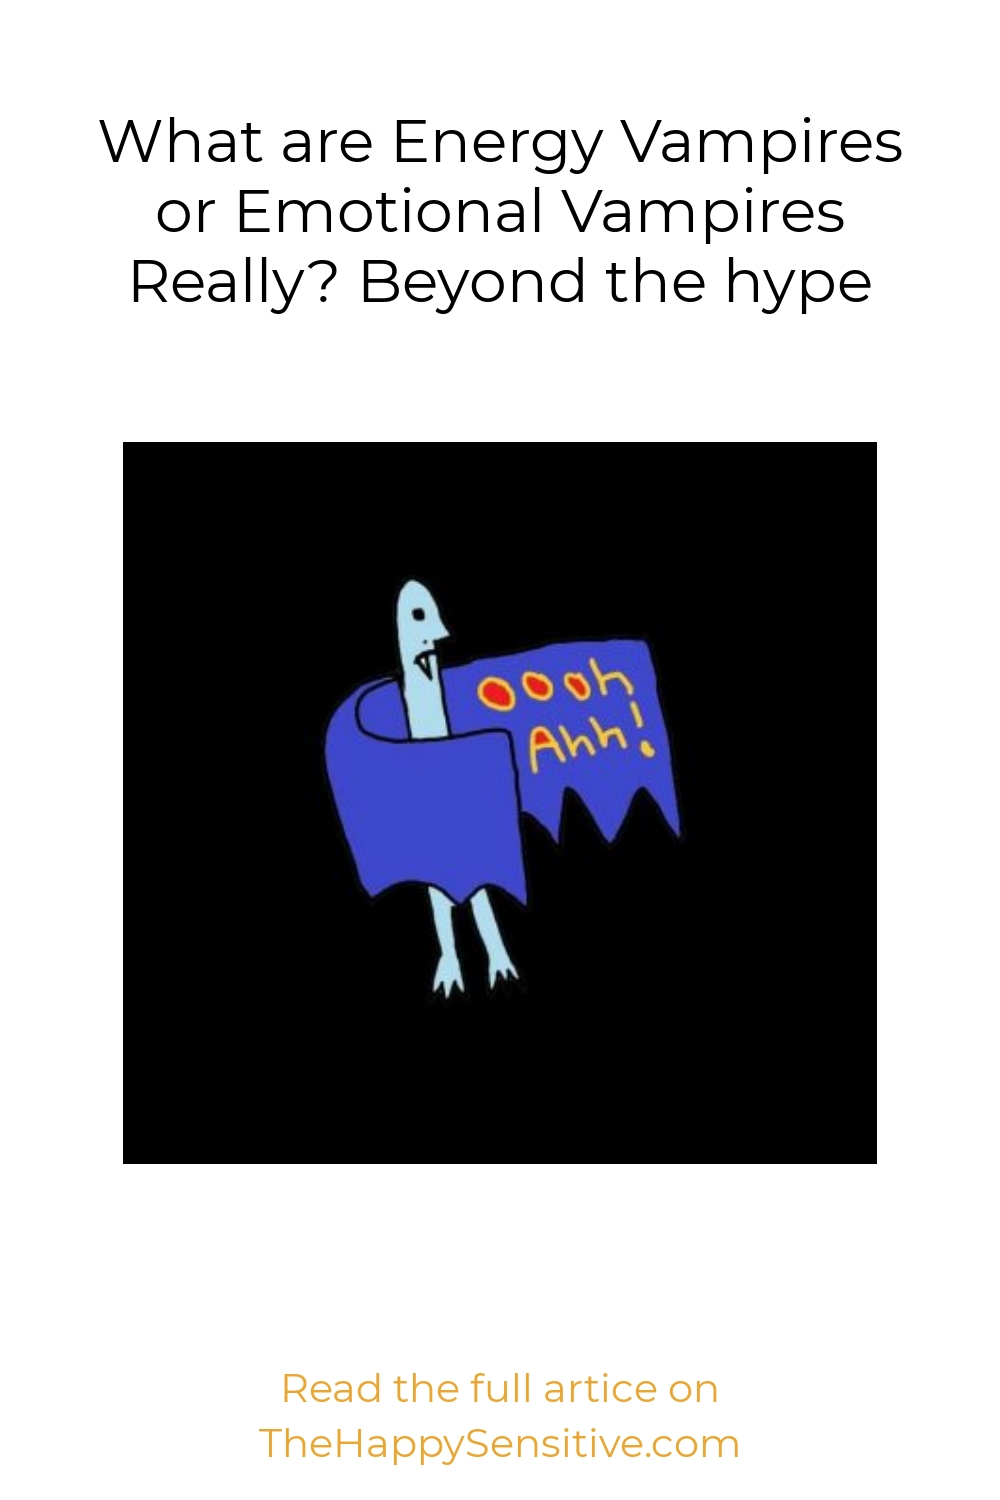 What are Energy Vampires or Emotional Vampires Really? Beyond the hype